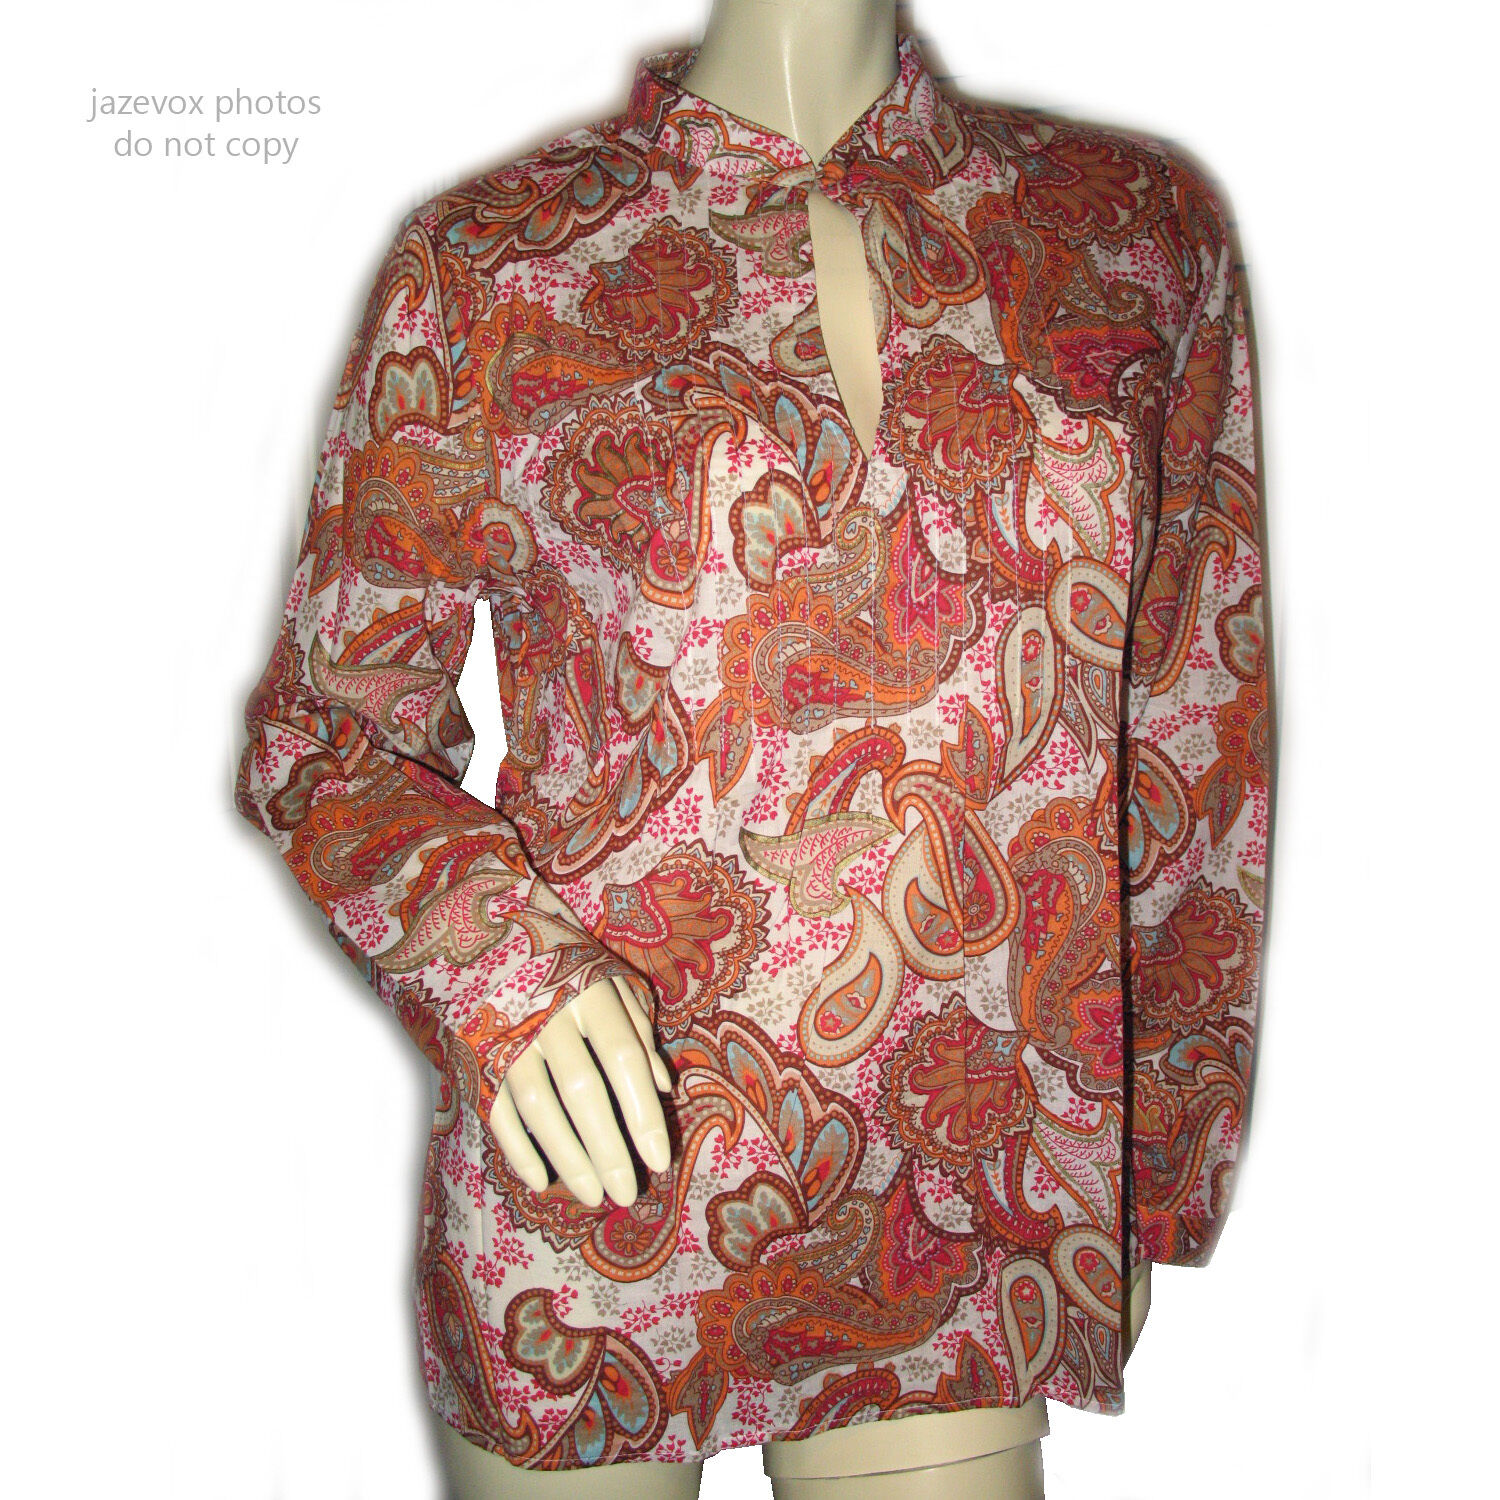 CHARTER CLUB damen Long Sleeve Top Blouse 10 MultiFarbe Orange Paisley Pattern